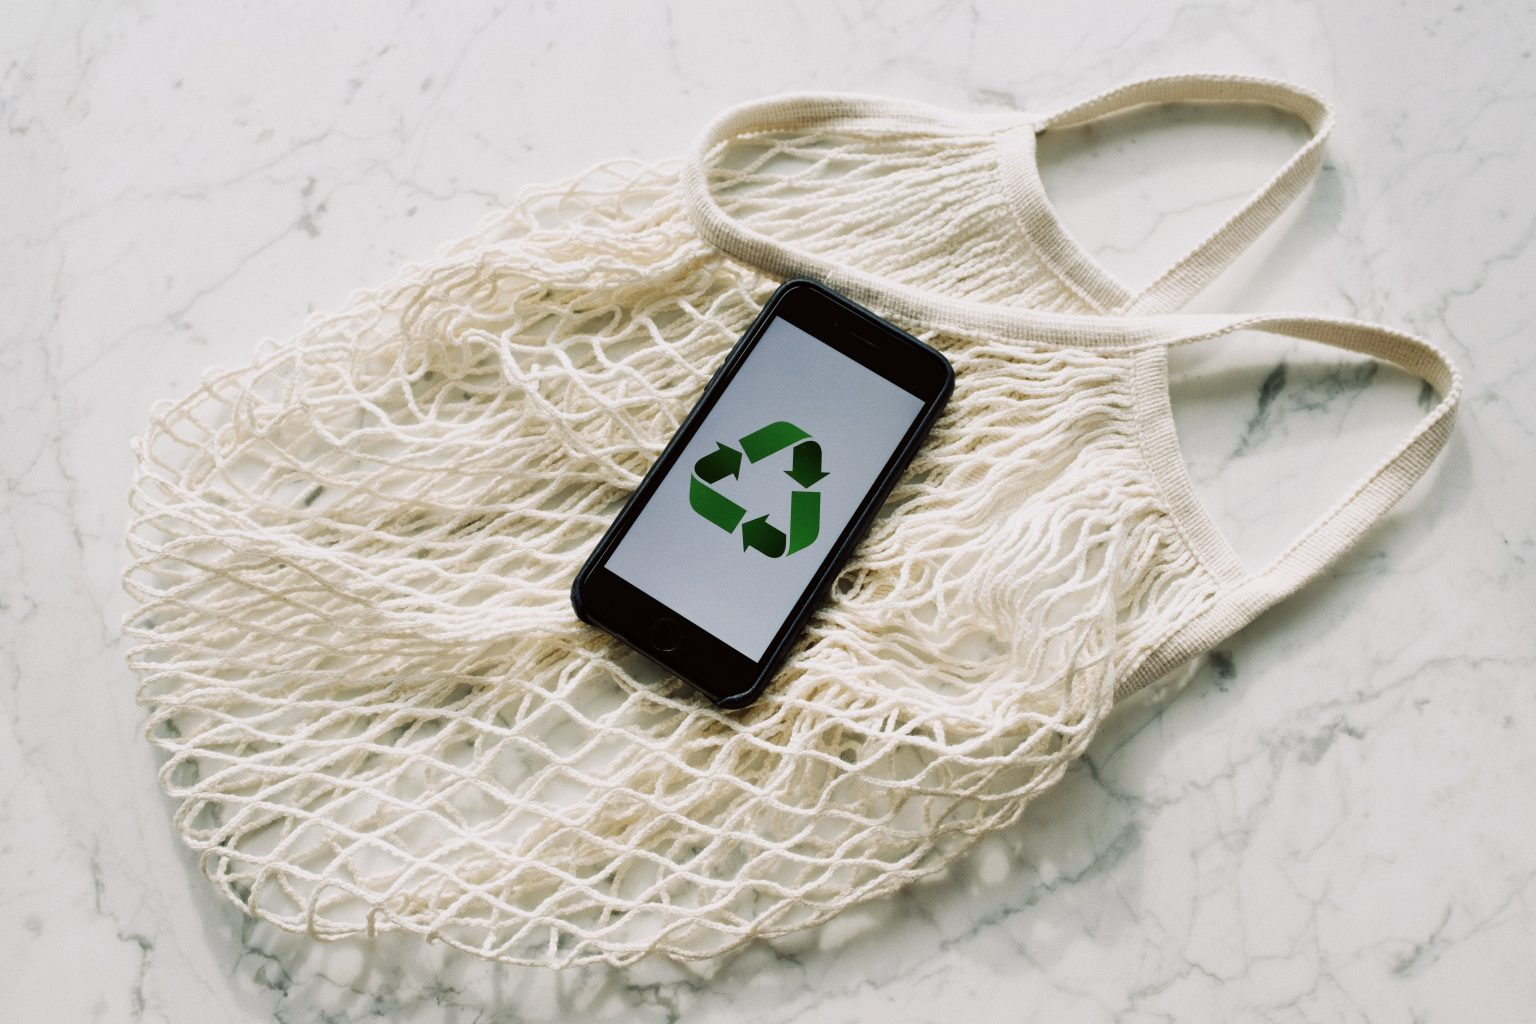 FOR-RECYCLING-ARTICLE-1536x1024